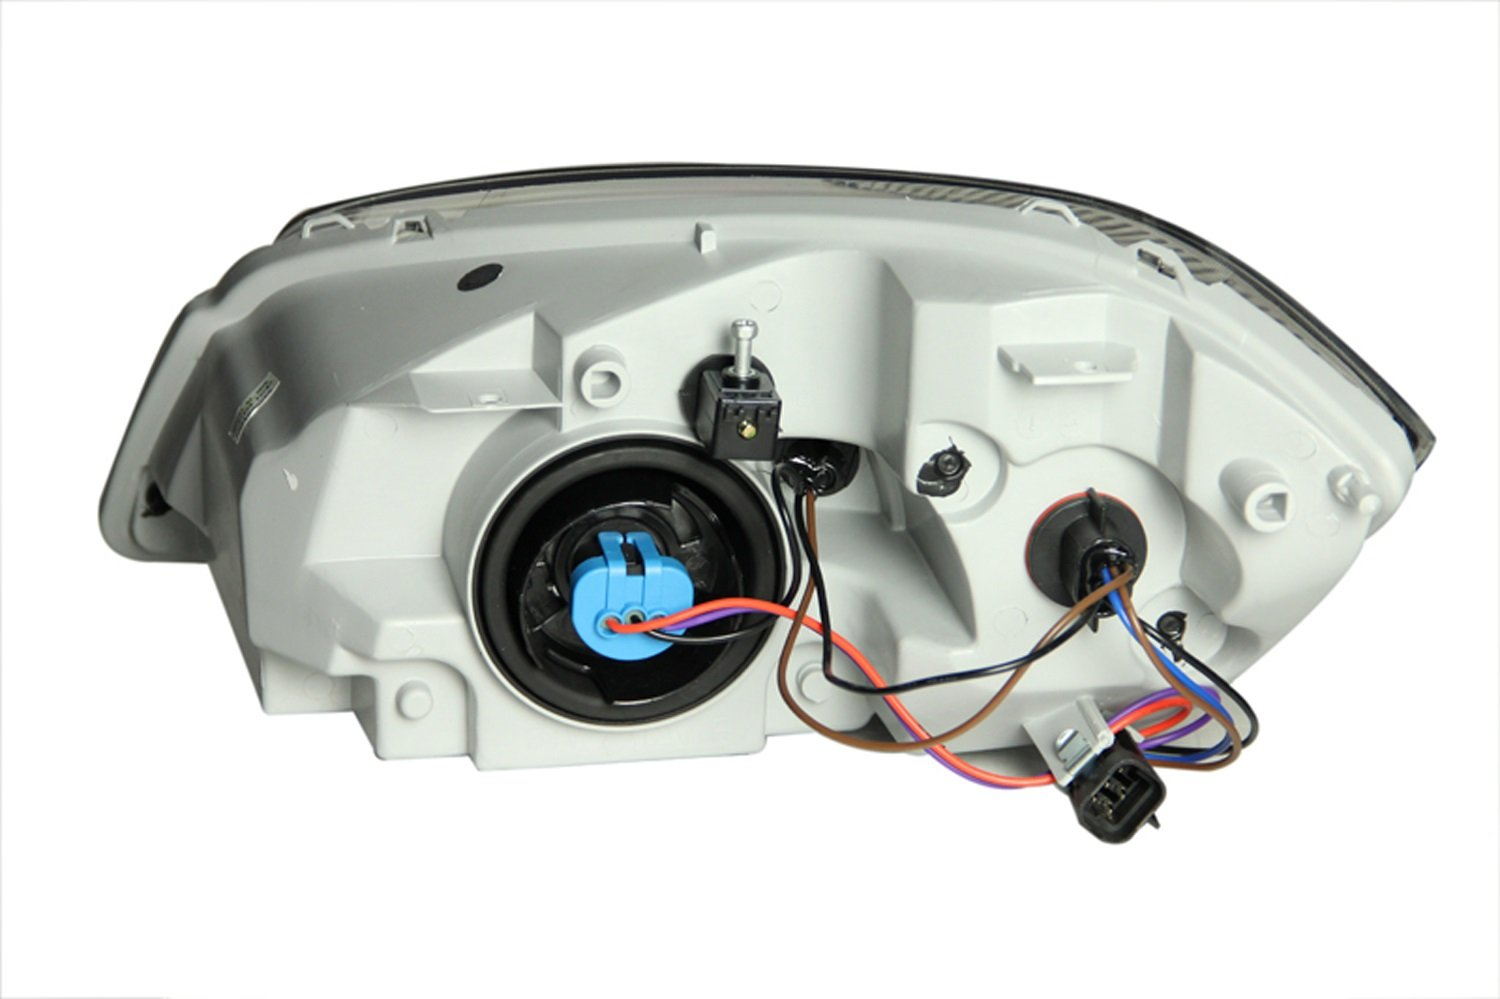 61GSljqJIyL._SL1500_ amazon com anzo usa 121154 chevrolet cobalt black headlight 2006 chevy cobalt wiring harness diagram at bakdesigns.co